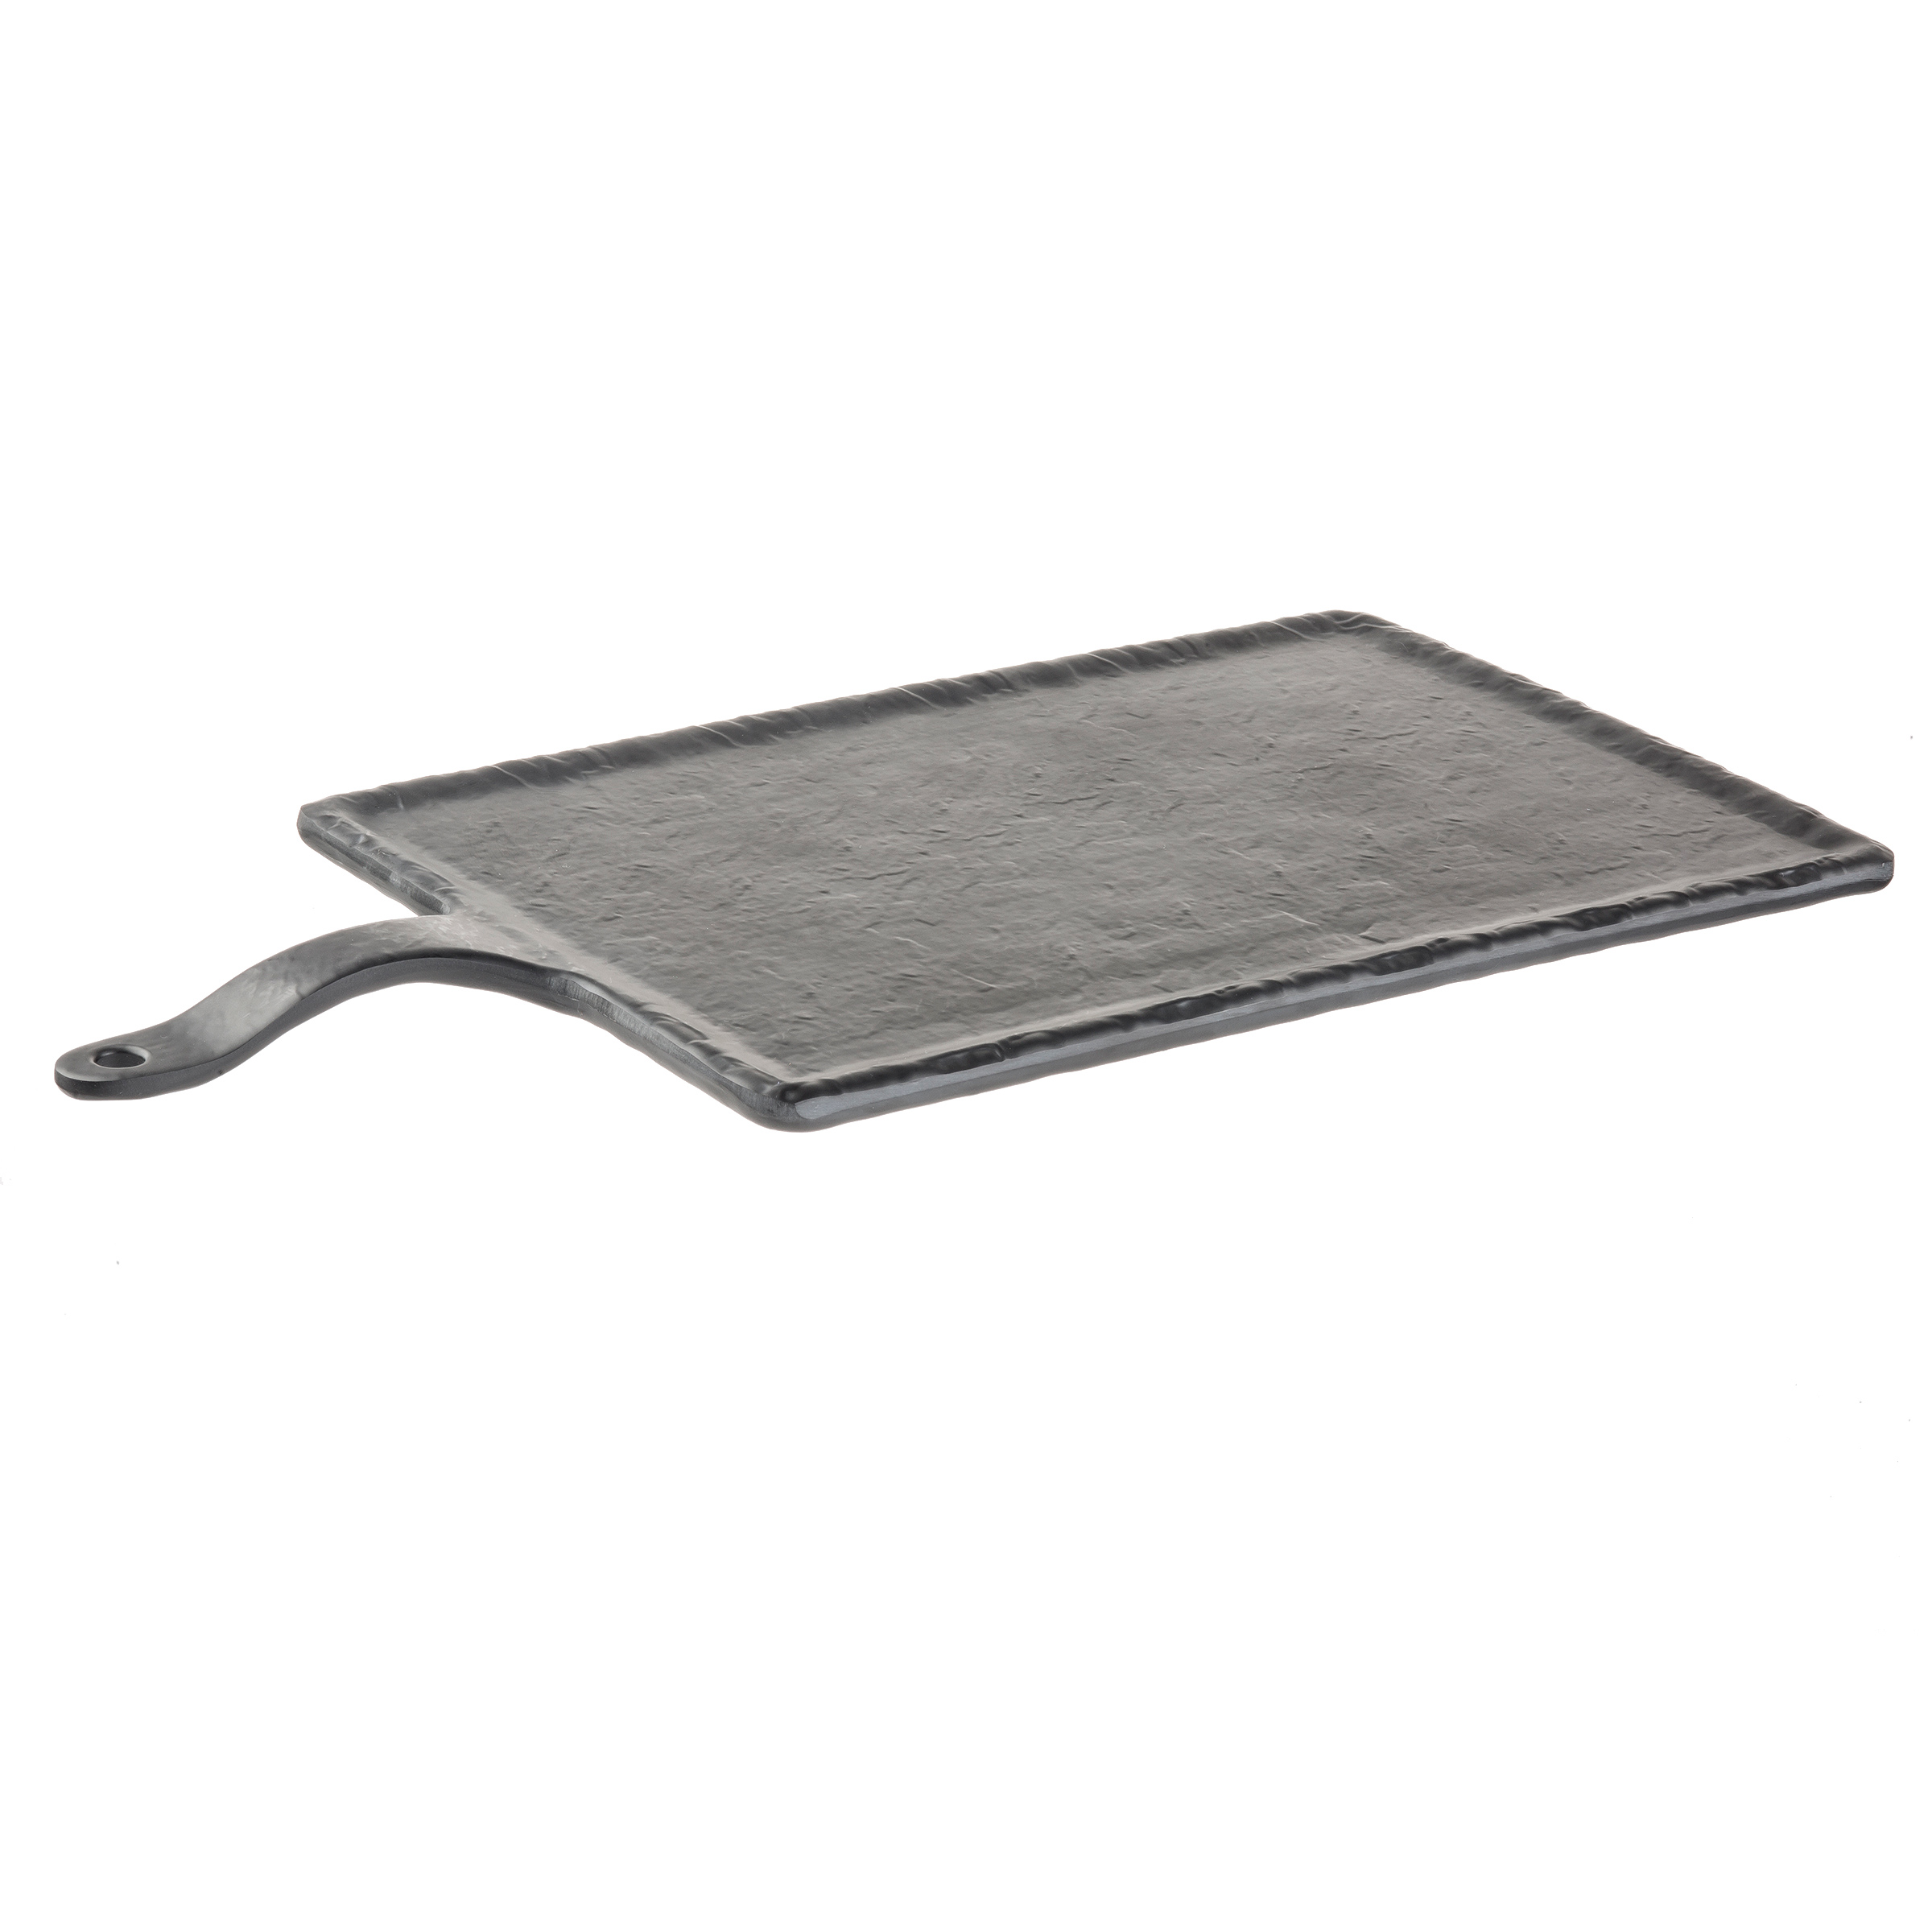 TableCraft Products MSP4520 serving & display tray